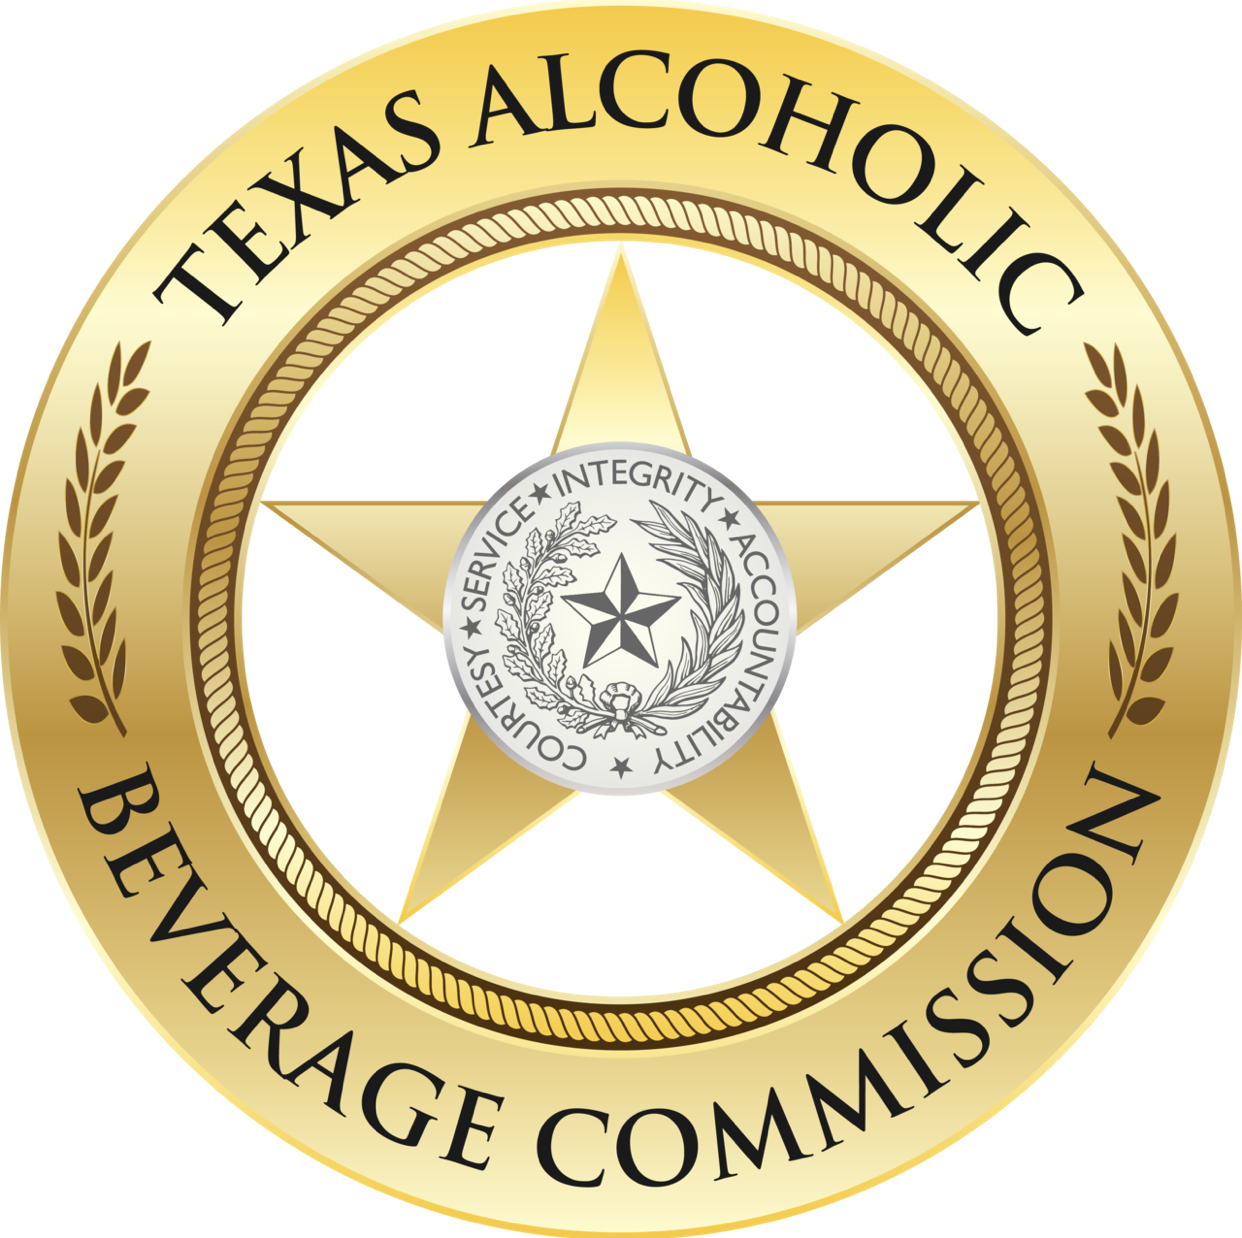 Texas Alcohol Retailers Training: Marketing & Sales